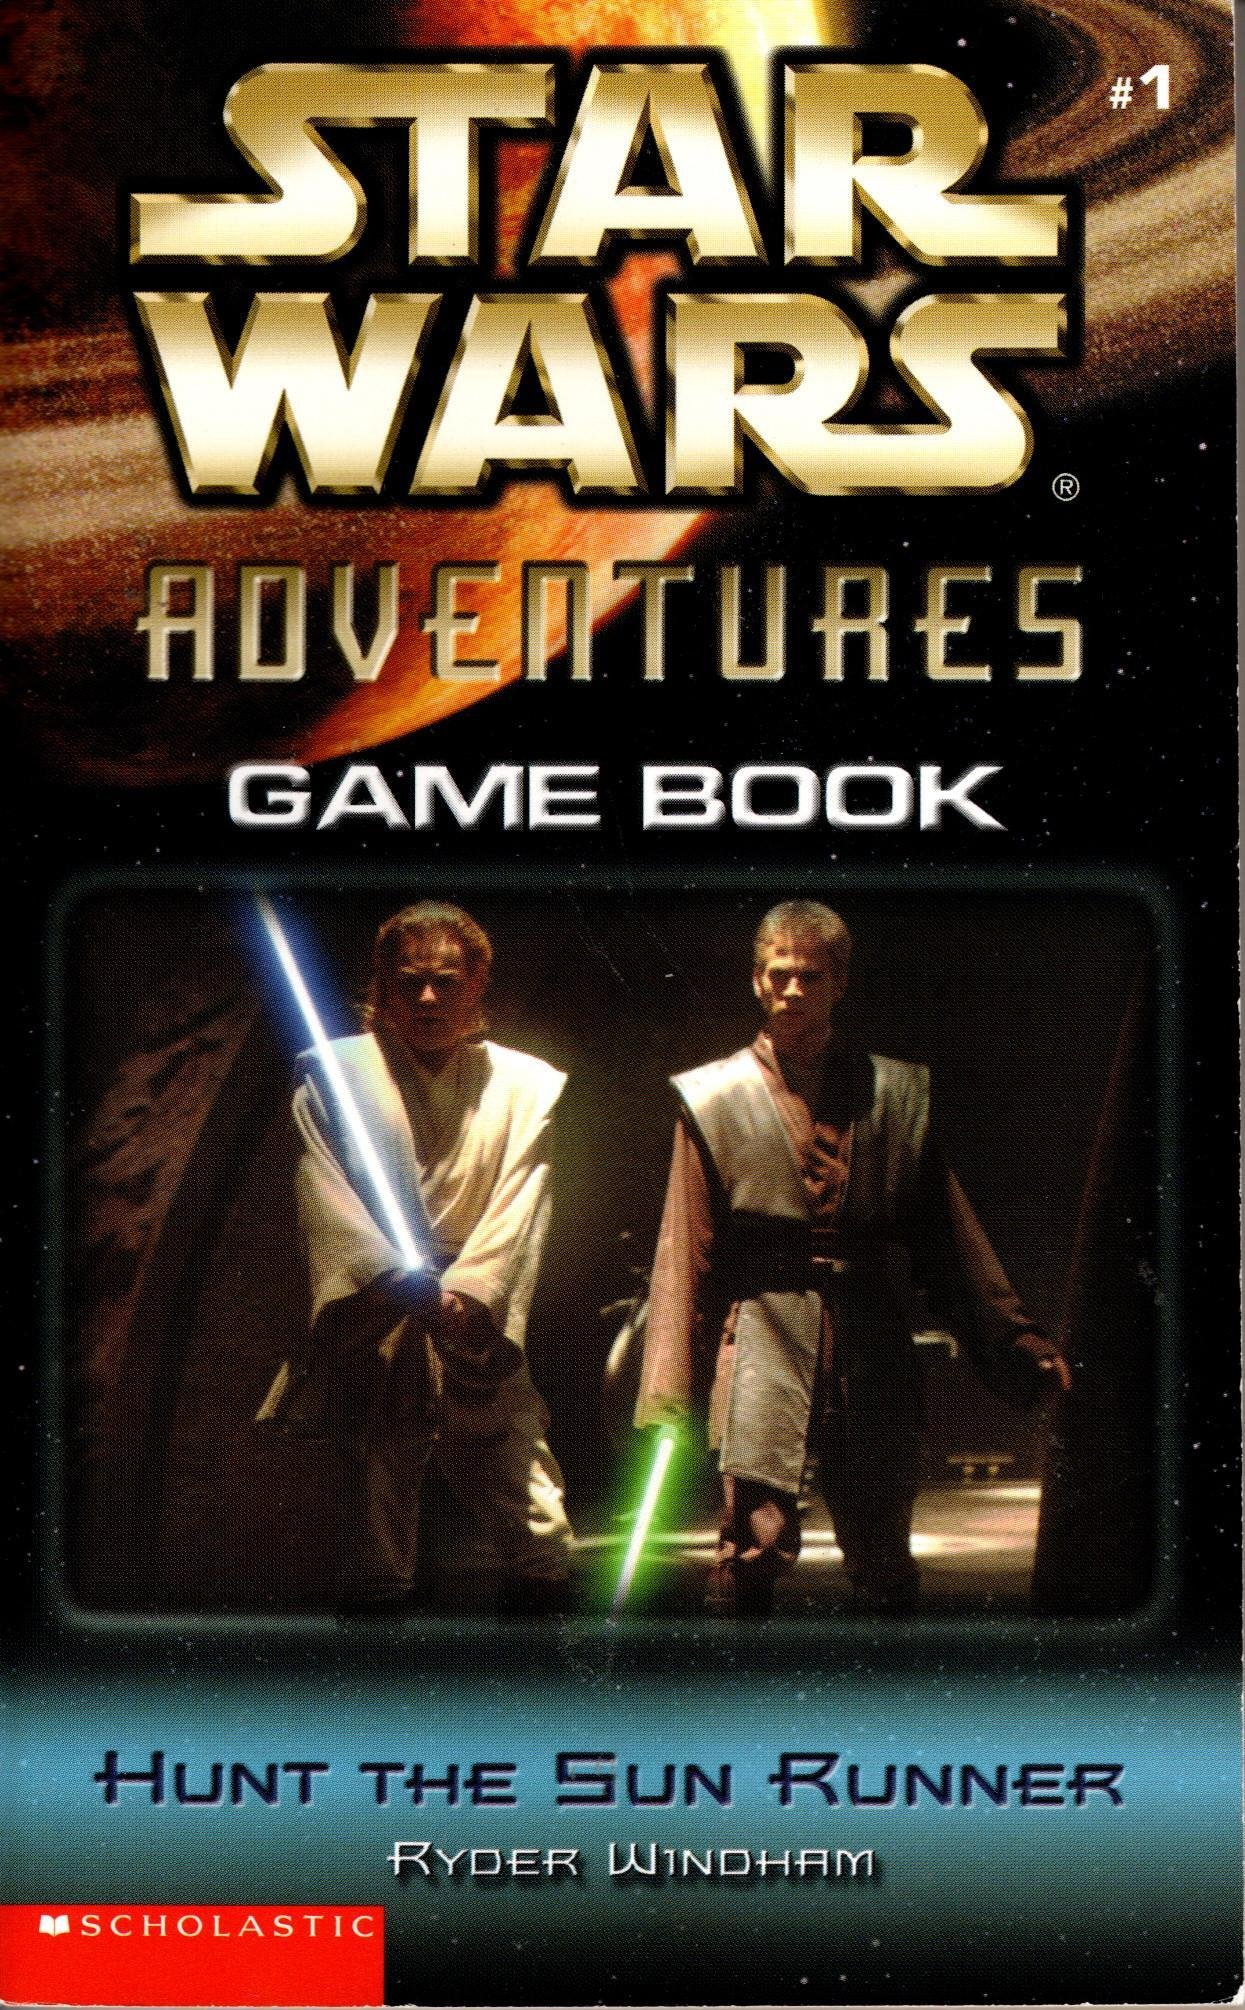 Star Wars Adventures Game Book: Hunt the Sun Runner